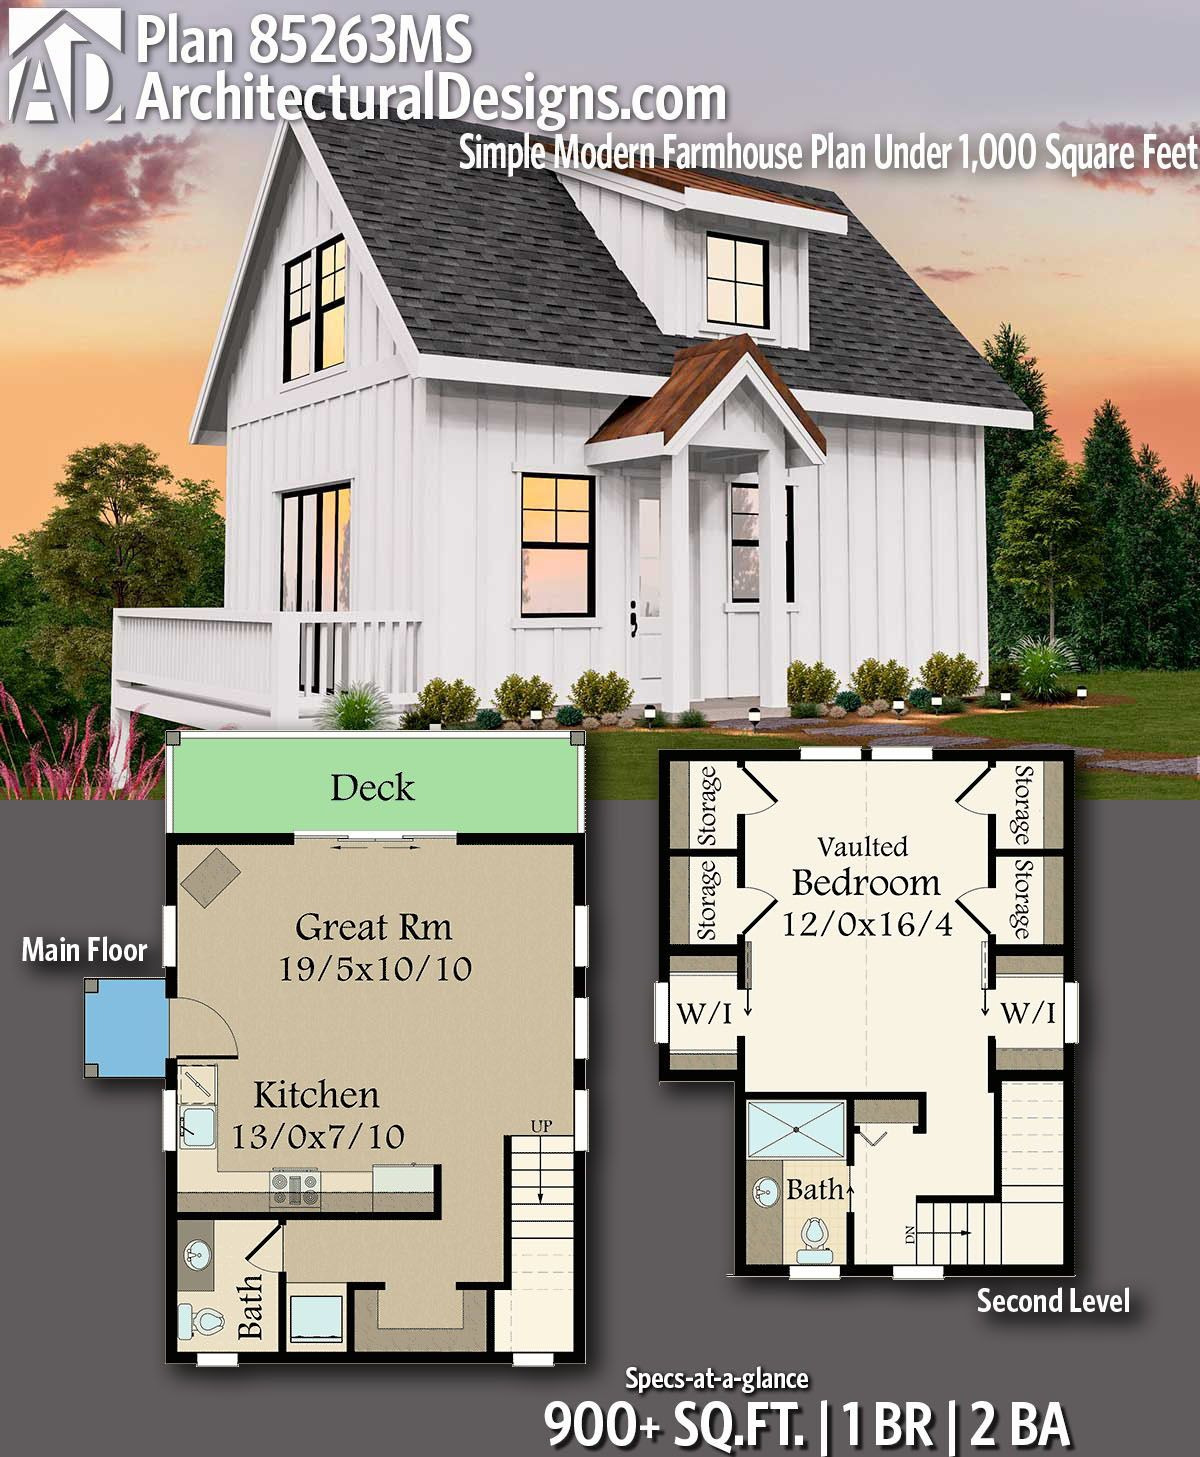 Small Modern House Plans Under 1000 Sq Ft Awesome Plan Ms Simple Modern Farmhouse Plan Under 1 000